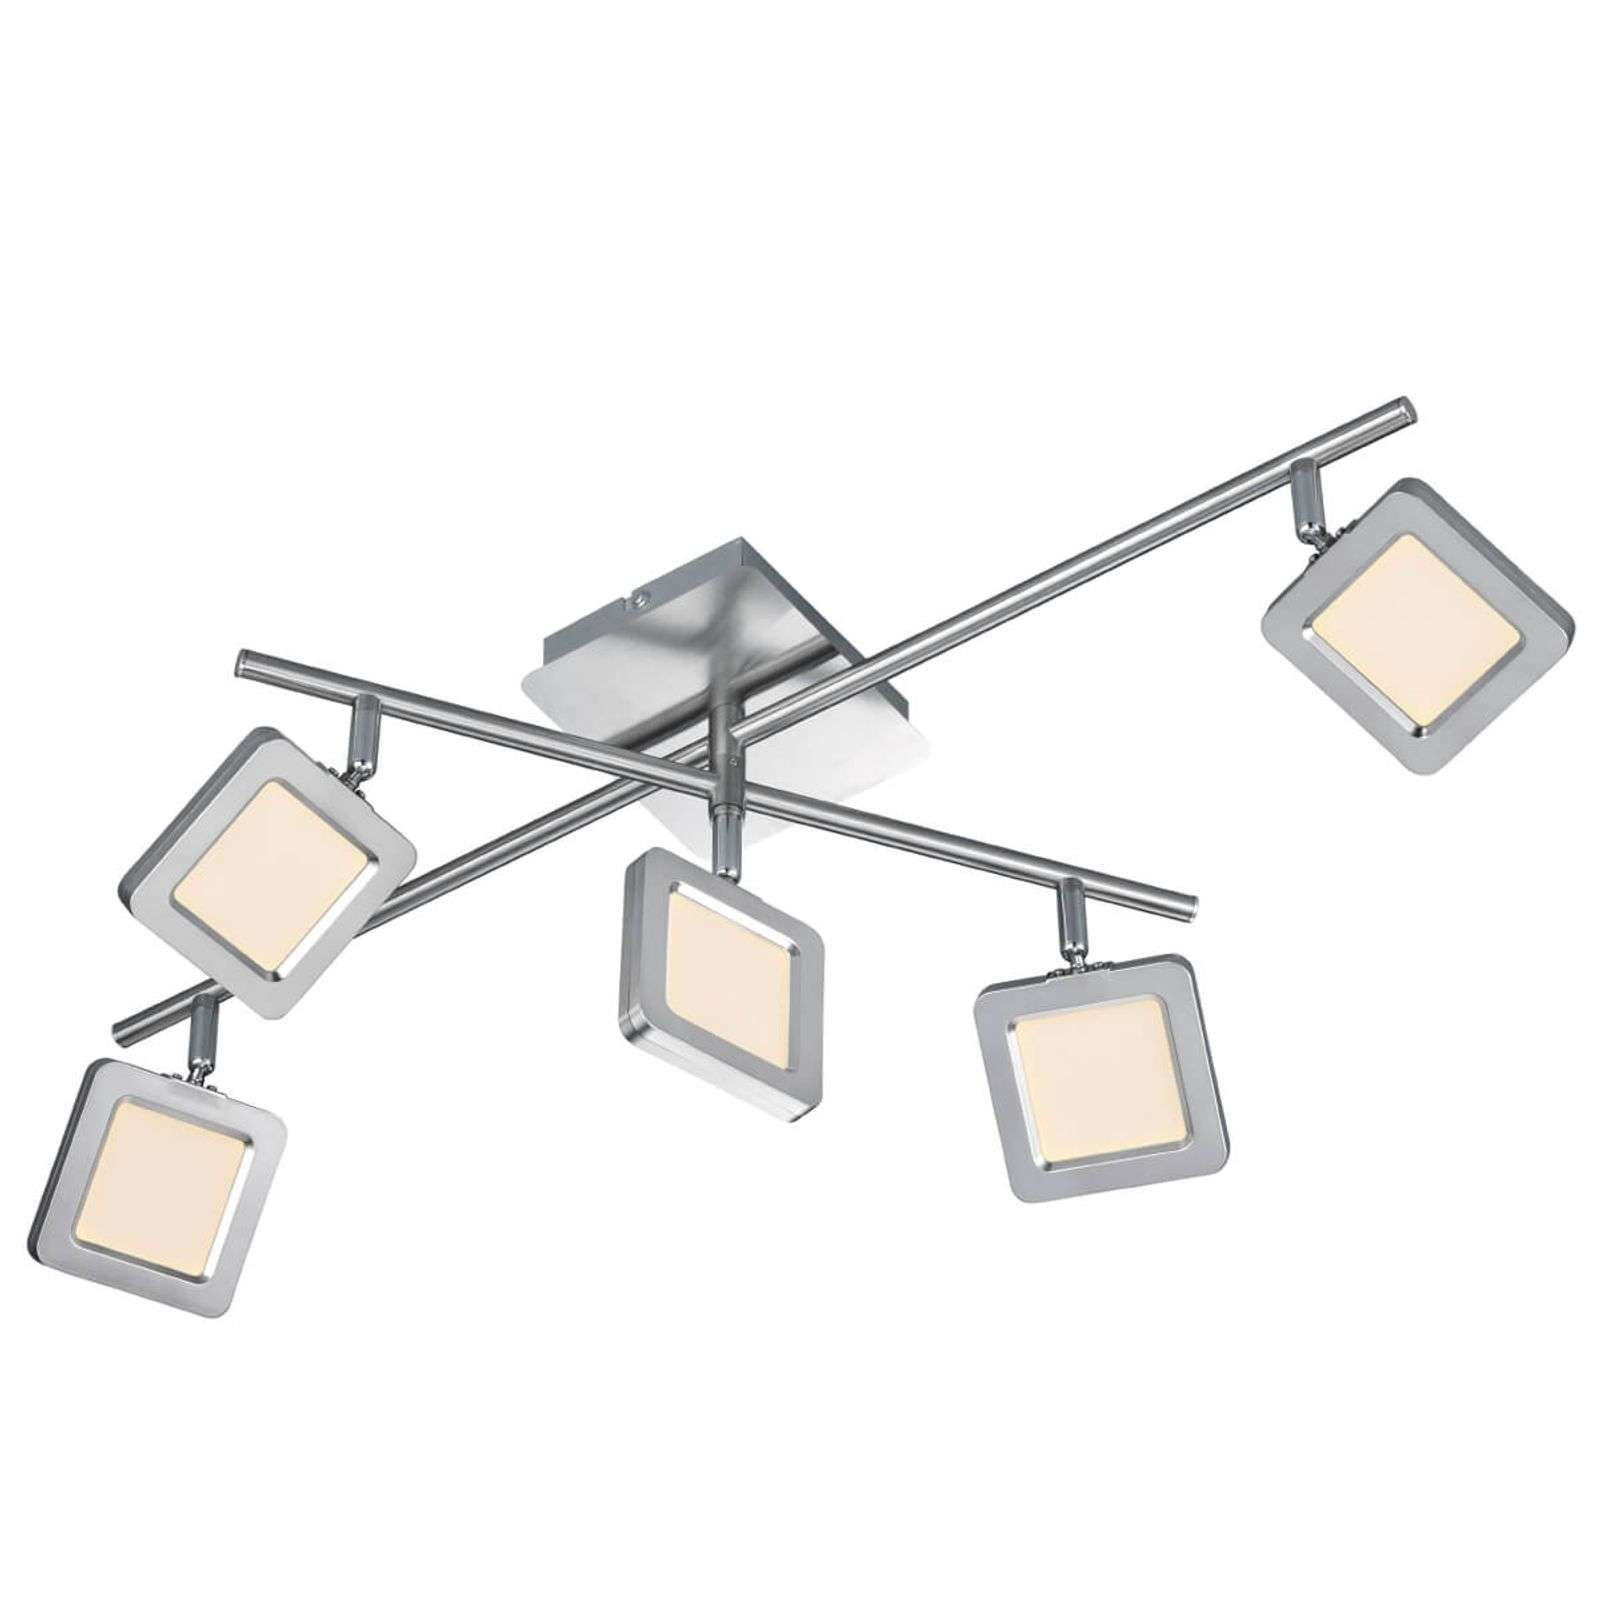 Plafonnier LED moderne Vision, dimmable